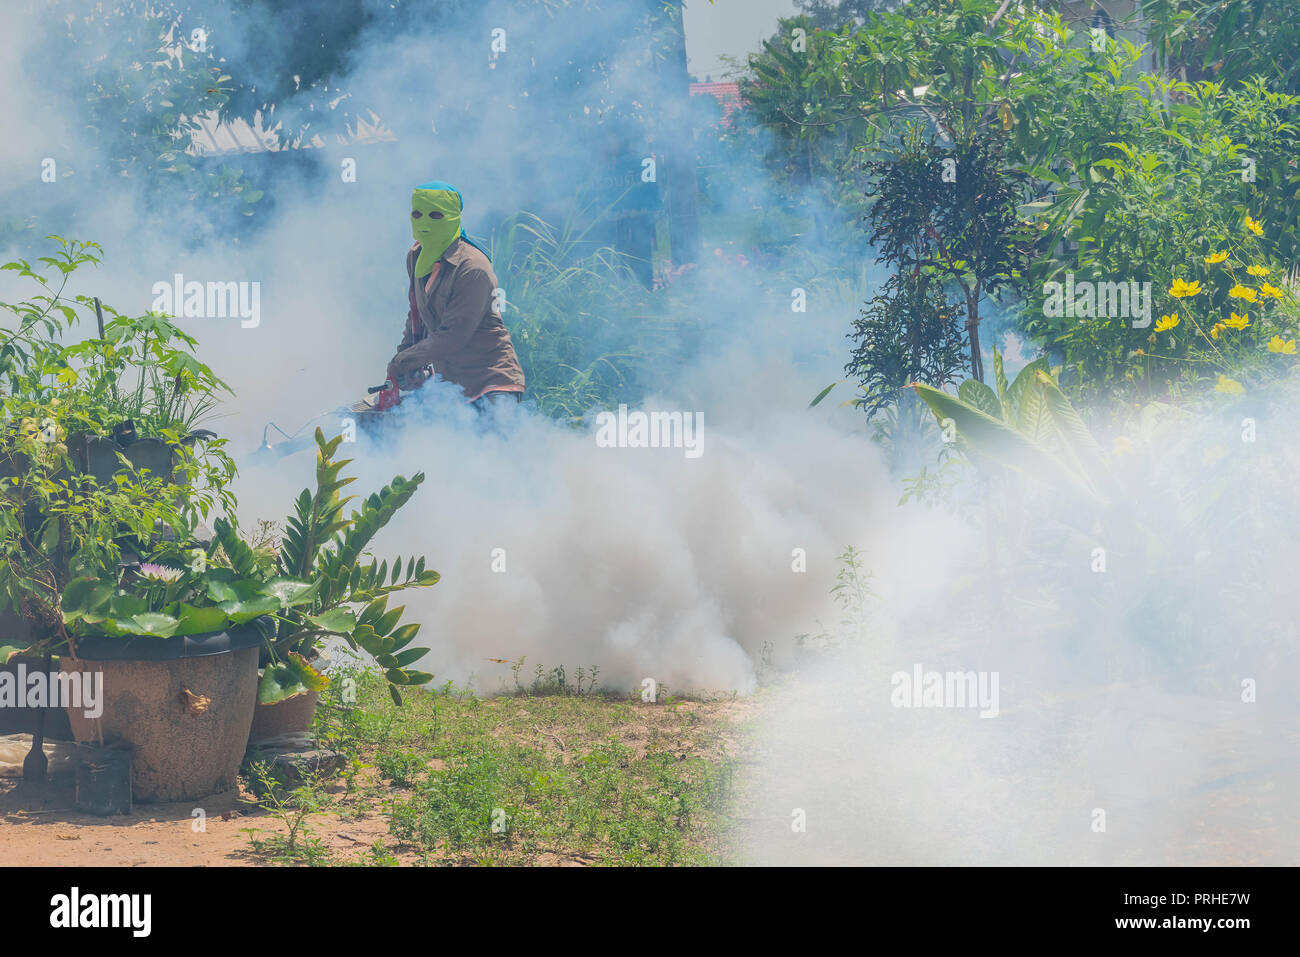 The soft blurred and soft focus the man sprays and fogging insecticide to prevent and kill the mosquito, Anti-Mosquito,Malaria Prevention. - Stock Image